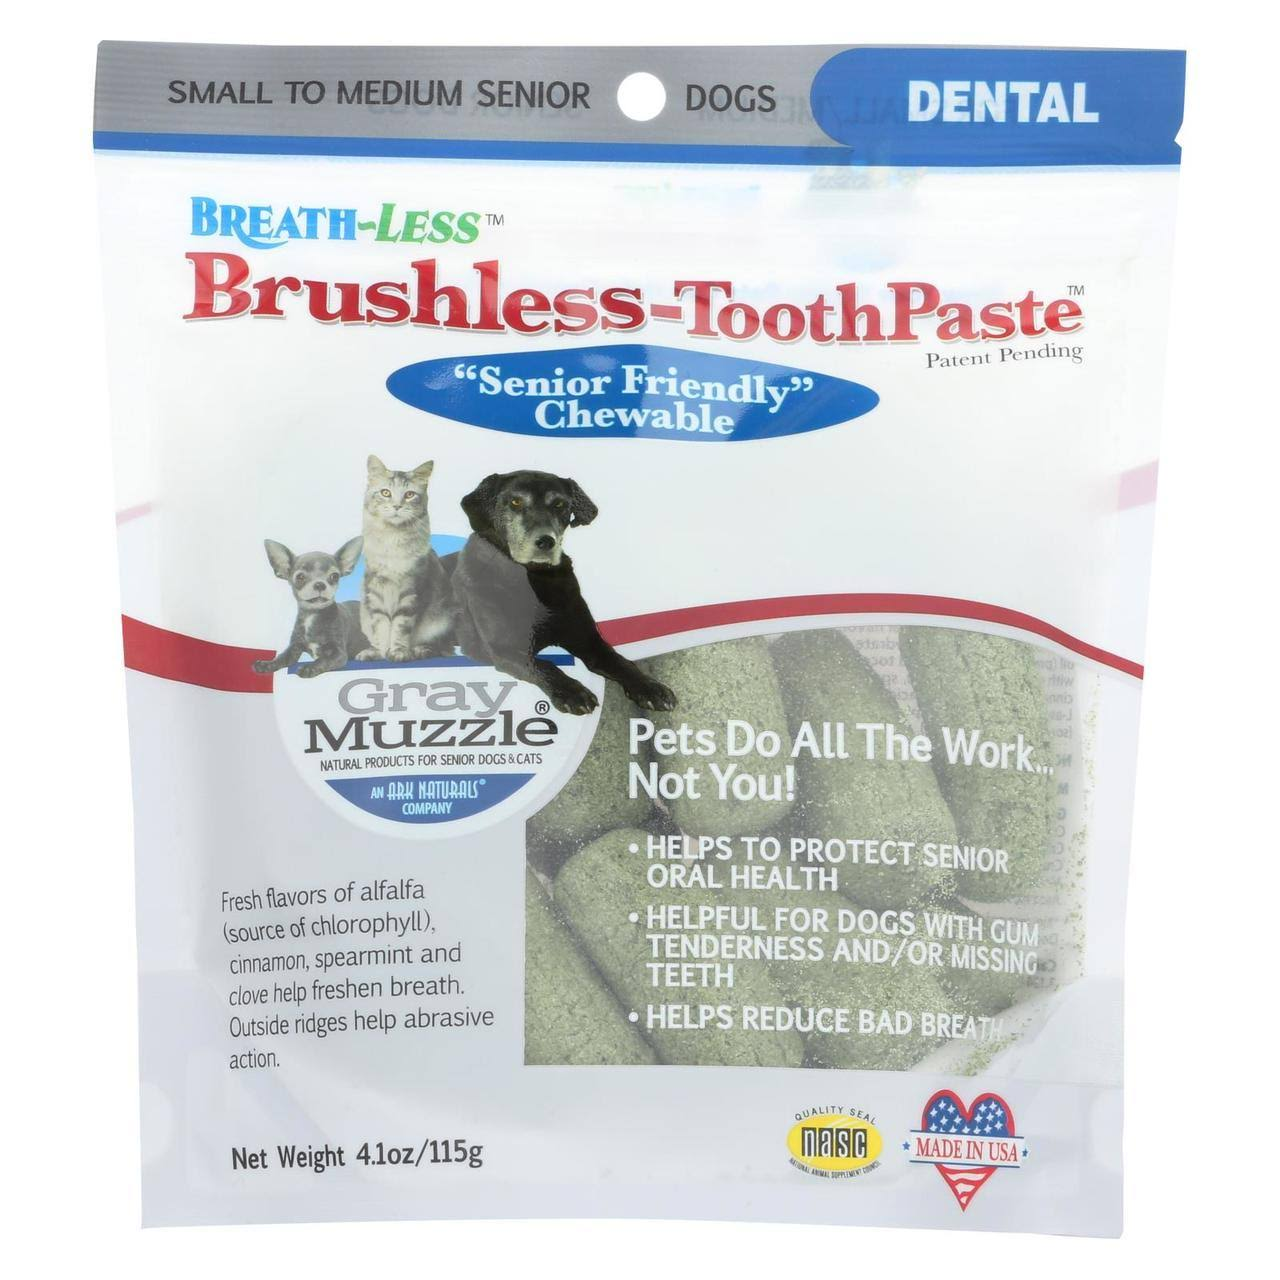 Ark Naturals Brushless Tooth Paste Chewable Dental Treats for Dogs - Gray Muzzle, 4.1oz